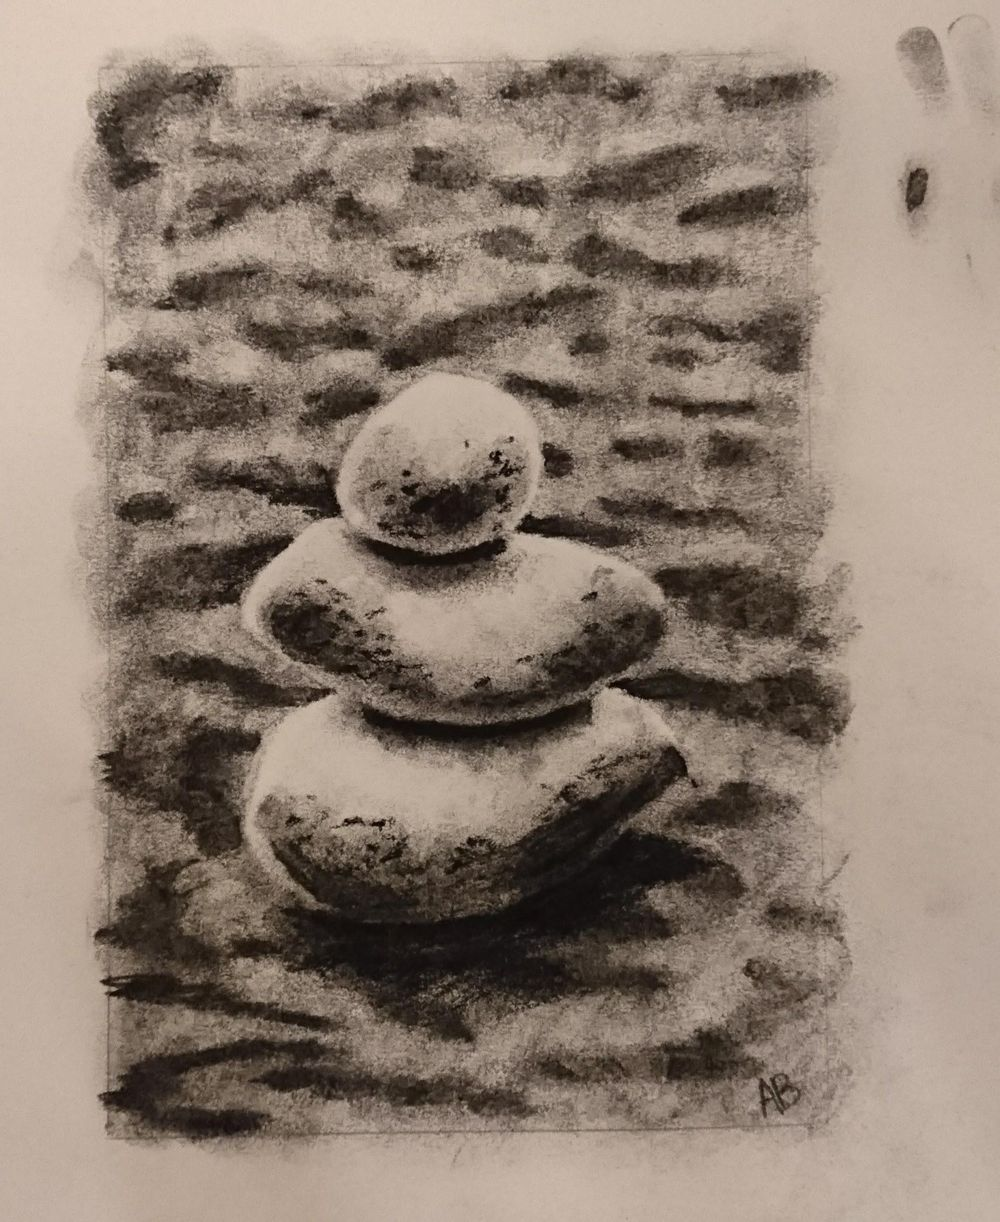 Rocks on Sand - image 1 - student project